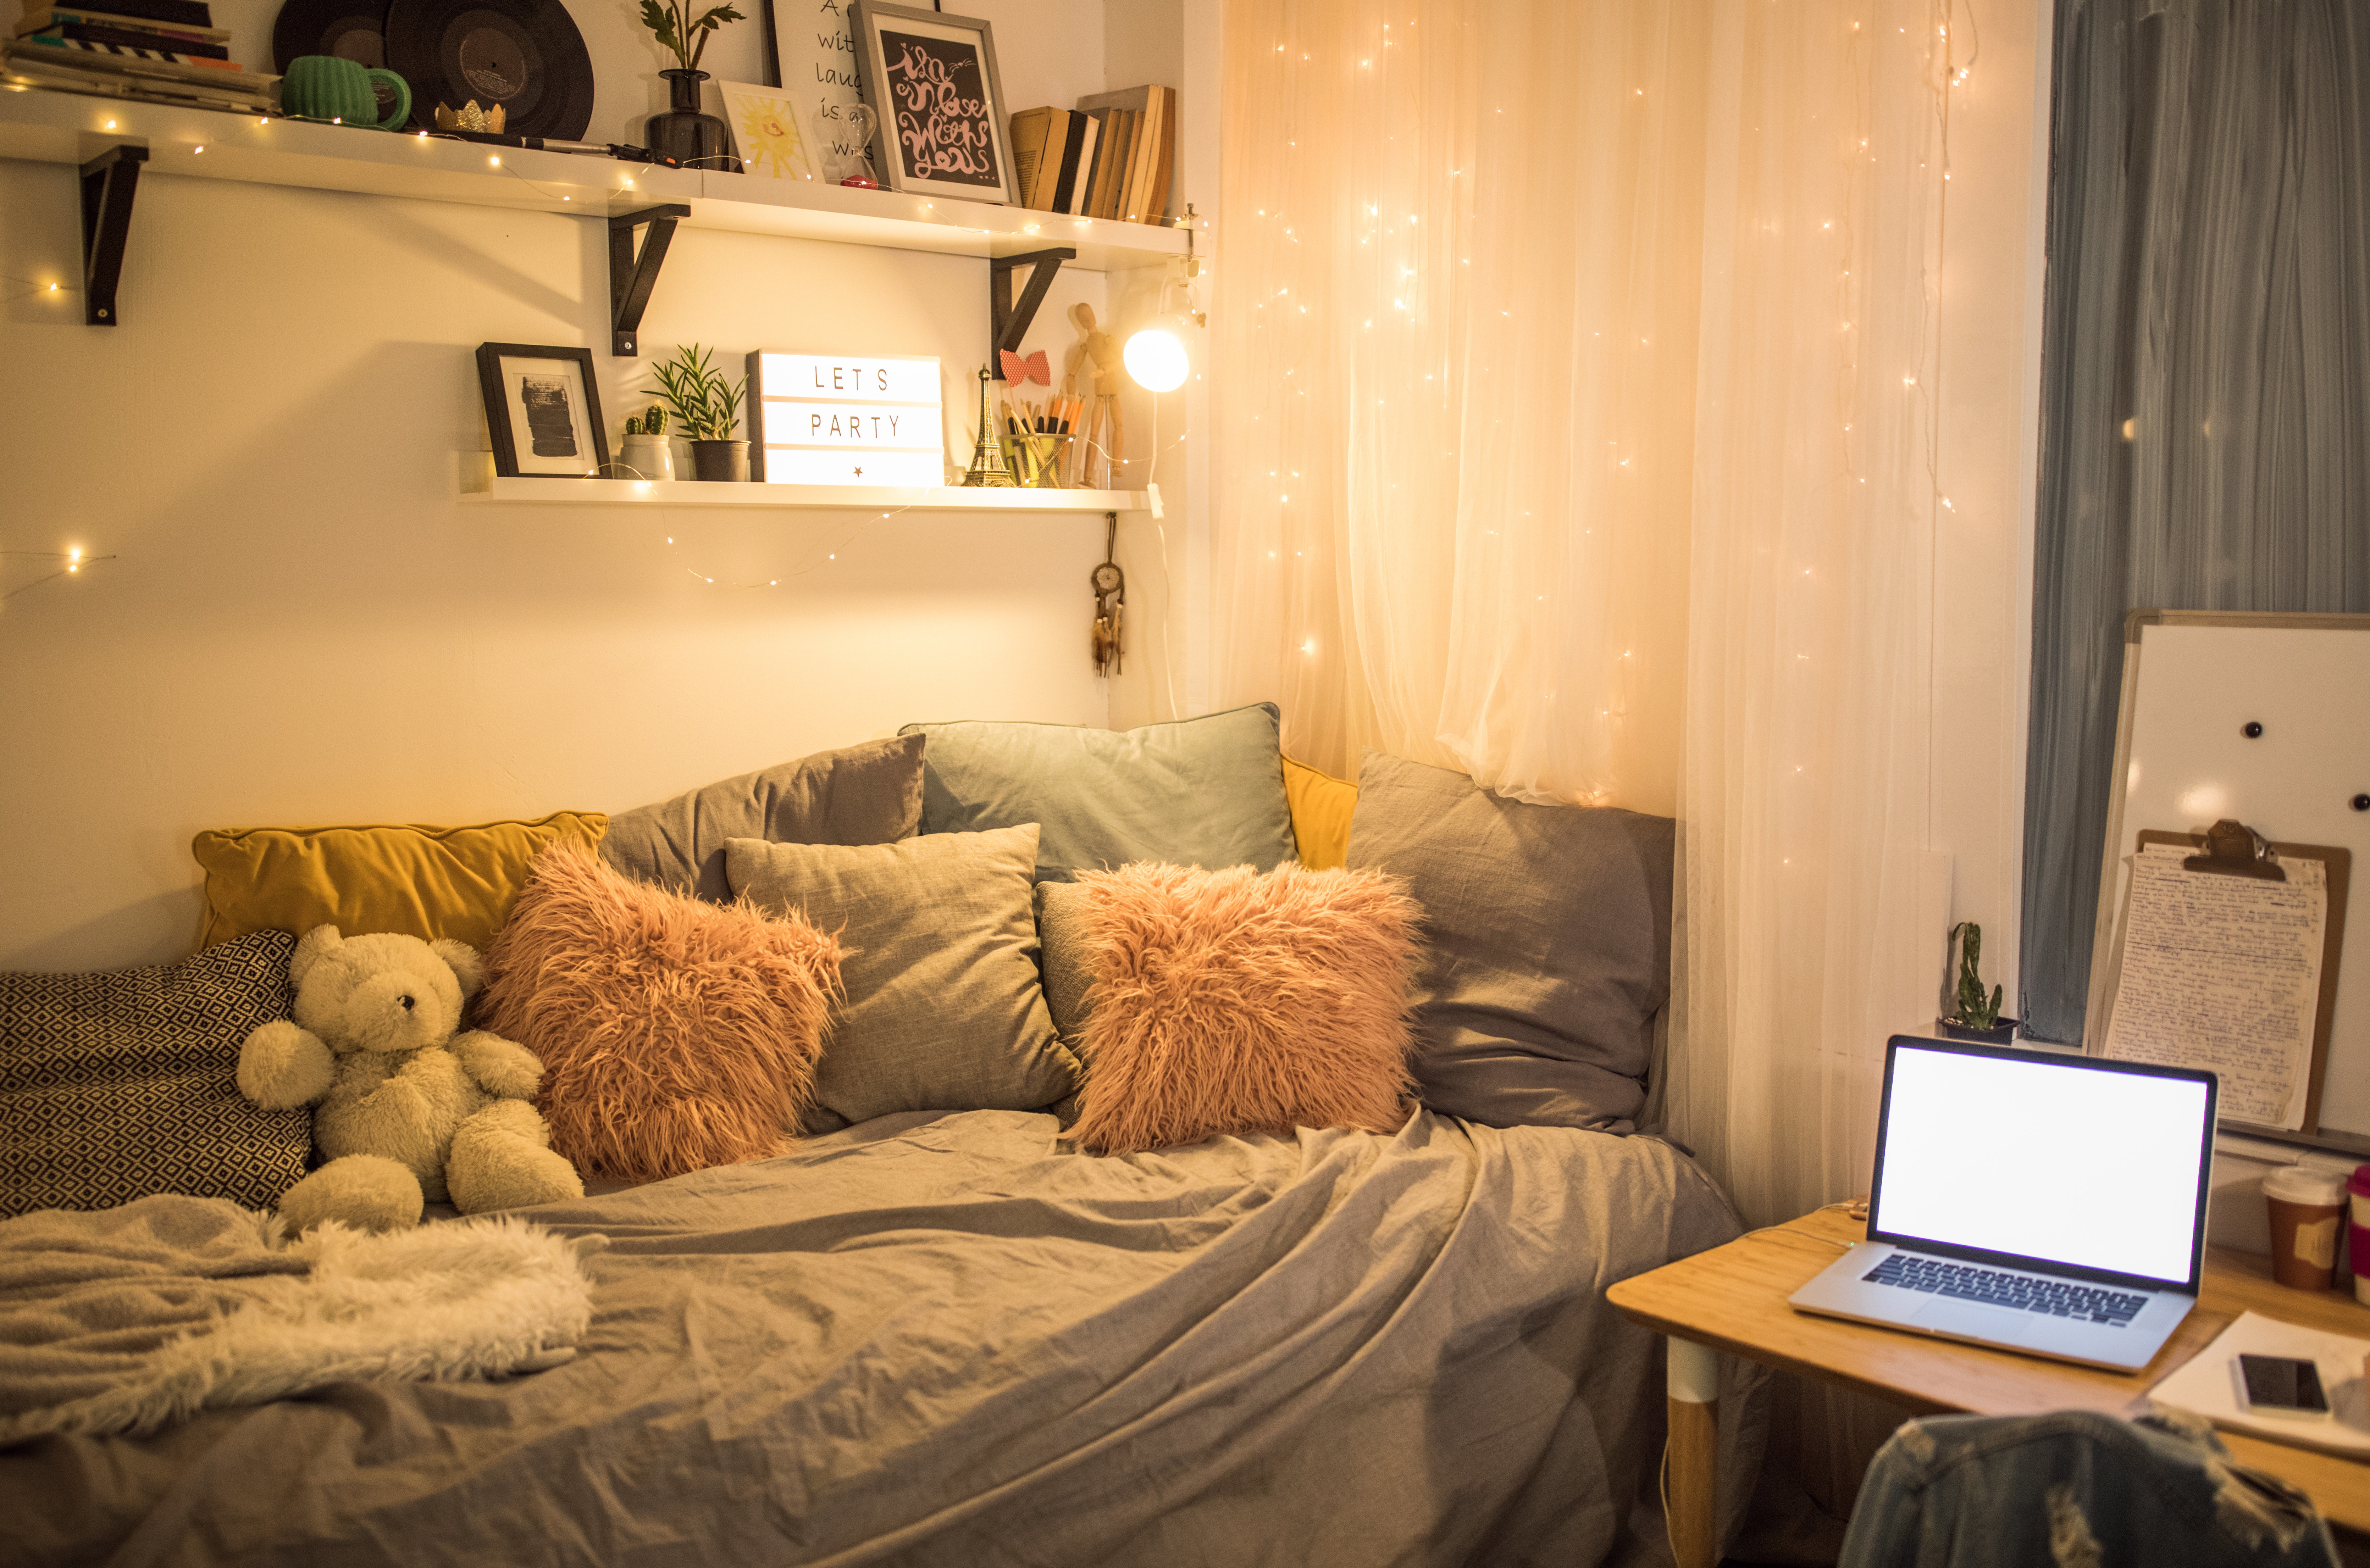 Dorm Room Decor You'll Want In Your Grown Up Home | HuffPost Life